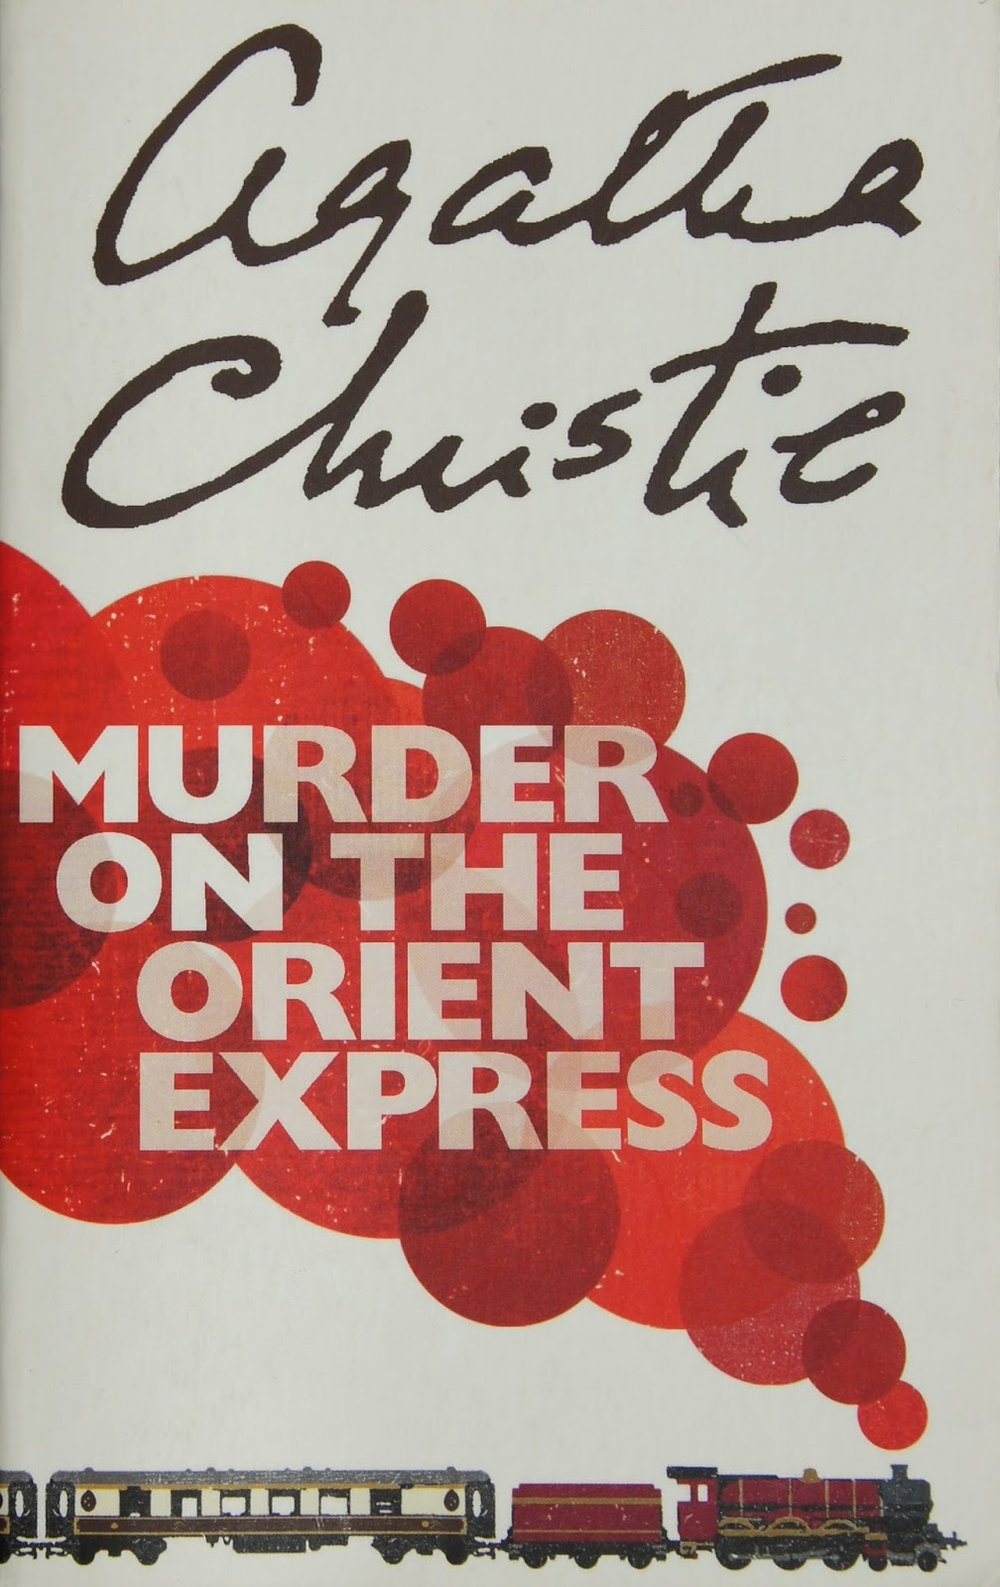 murder-on-the-orient-express-book-cover.jpg